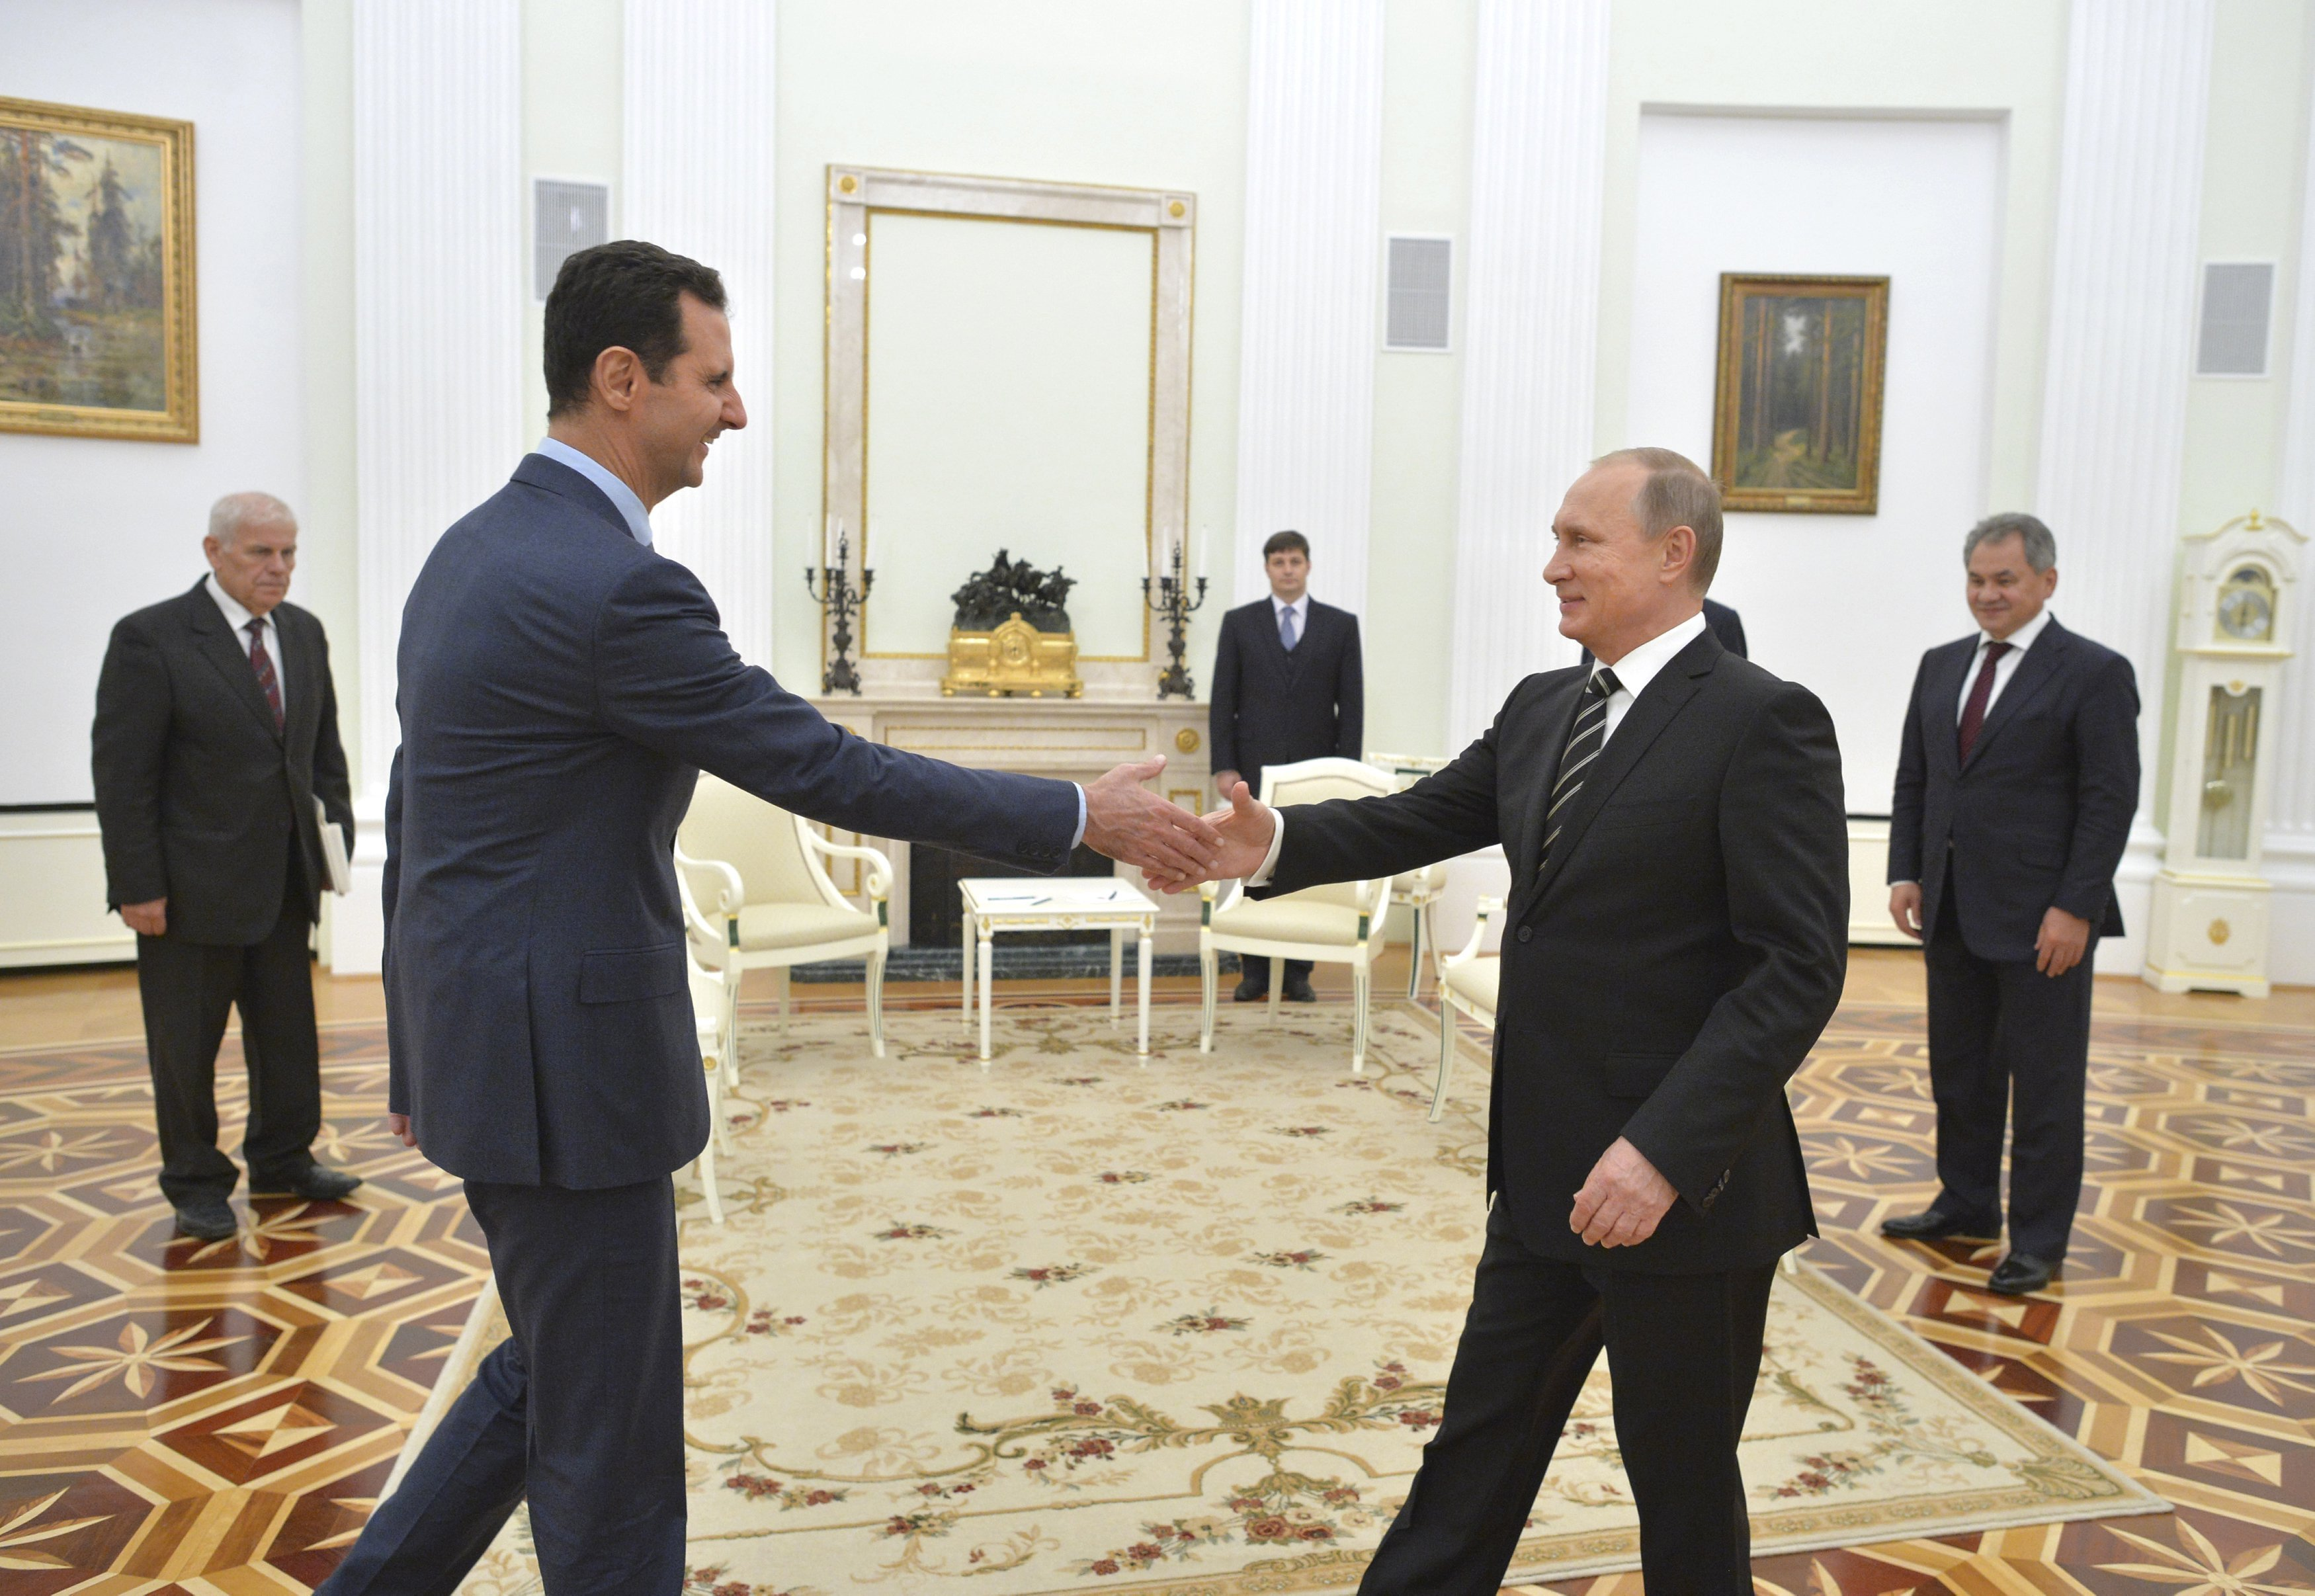 Putin and Assad Discuss Military Efforts at Surprise Meeting | Time